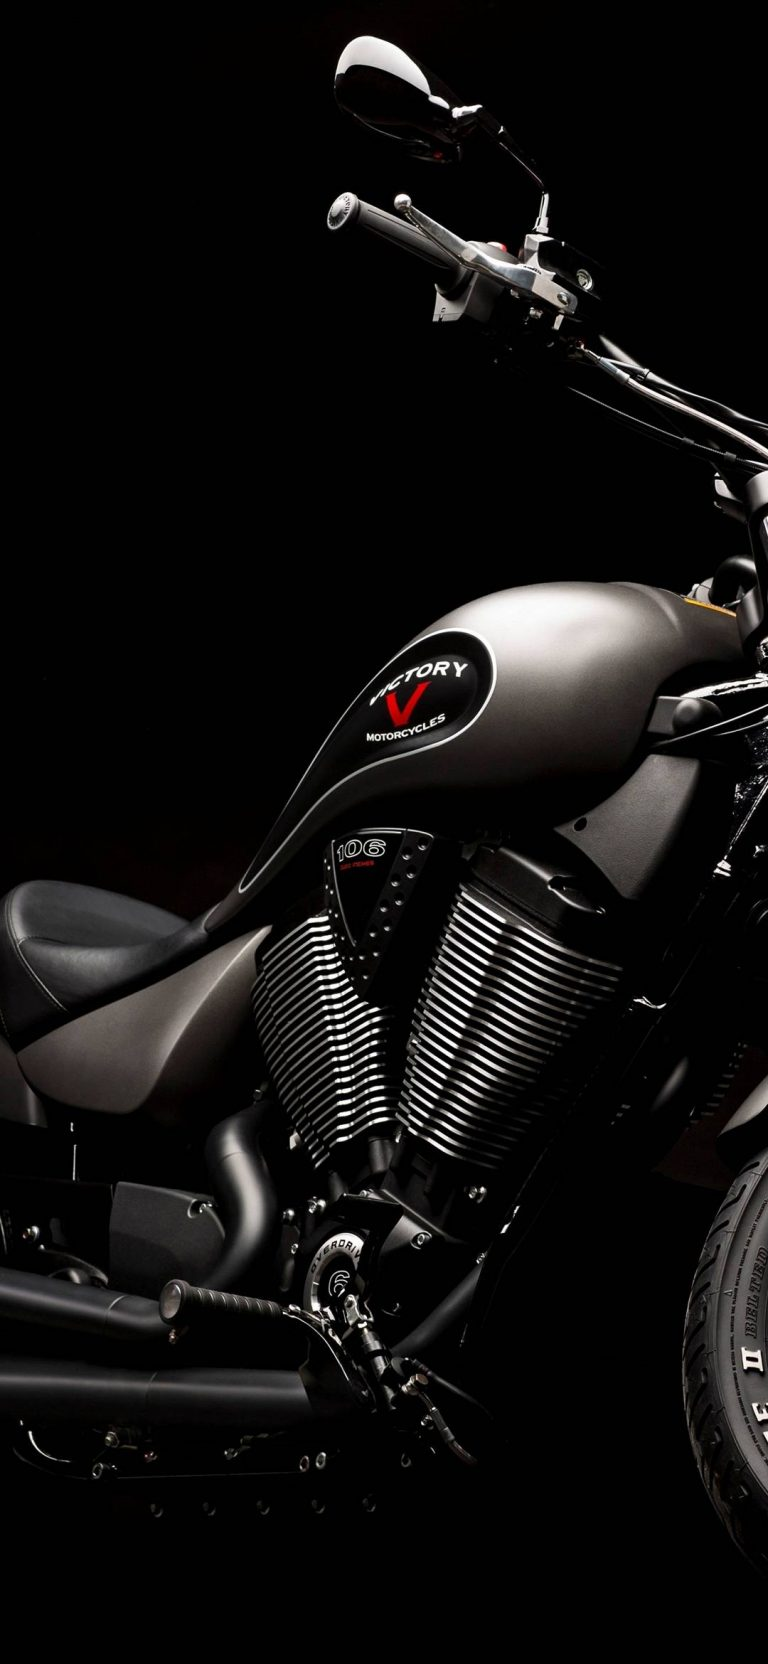 Victory Gunner Motorcycle 2015 Wallpaper 1080x2340 768x1664